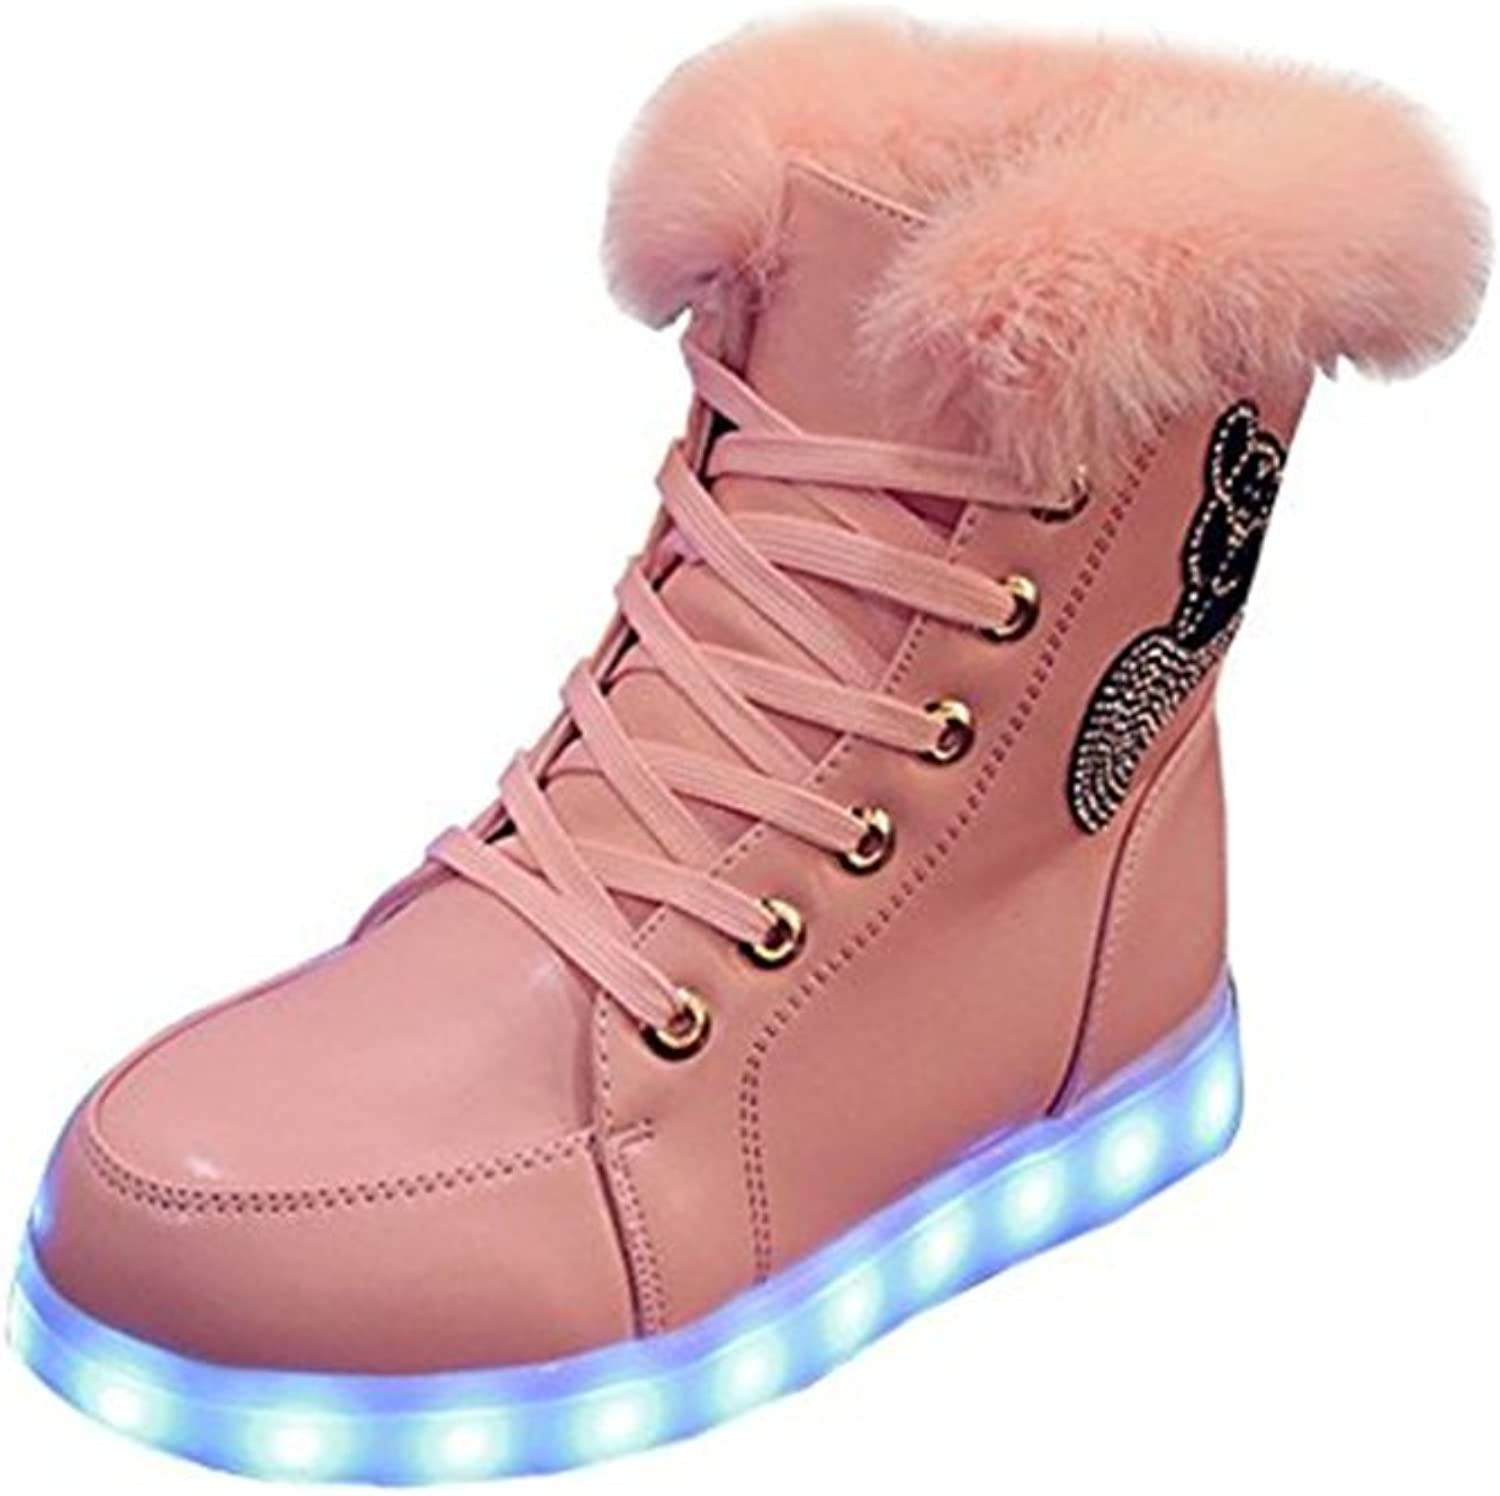 A2kmsmss5a Women USB Charging Light Up shoes High Couple LED shoes